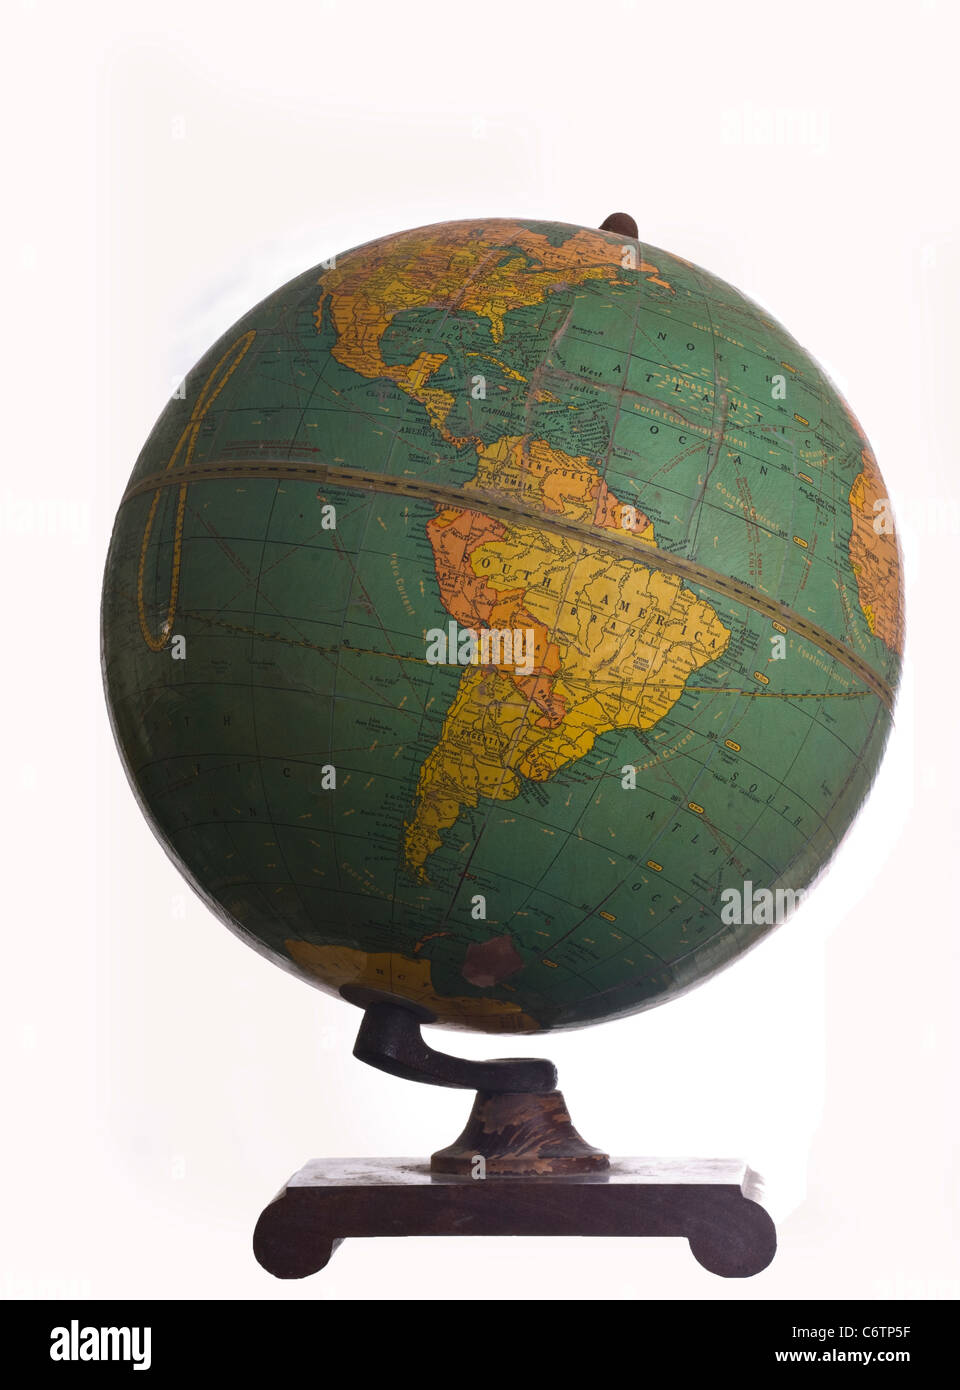 an ancient globe with white background - Stock Image